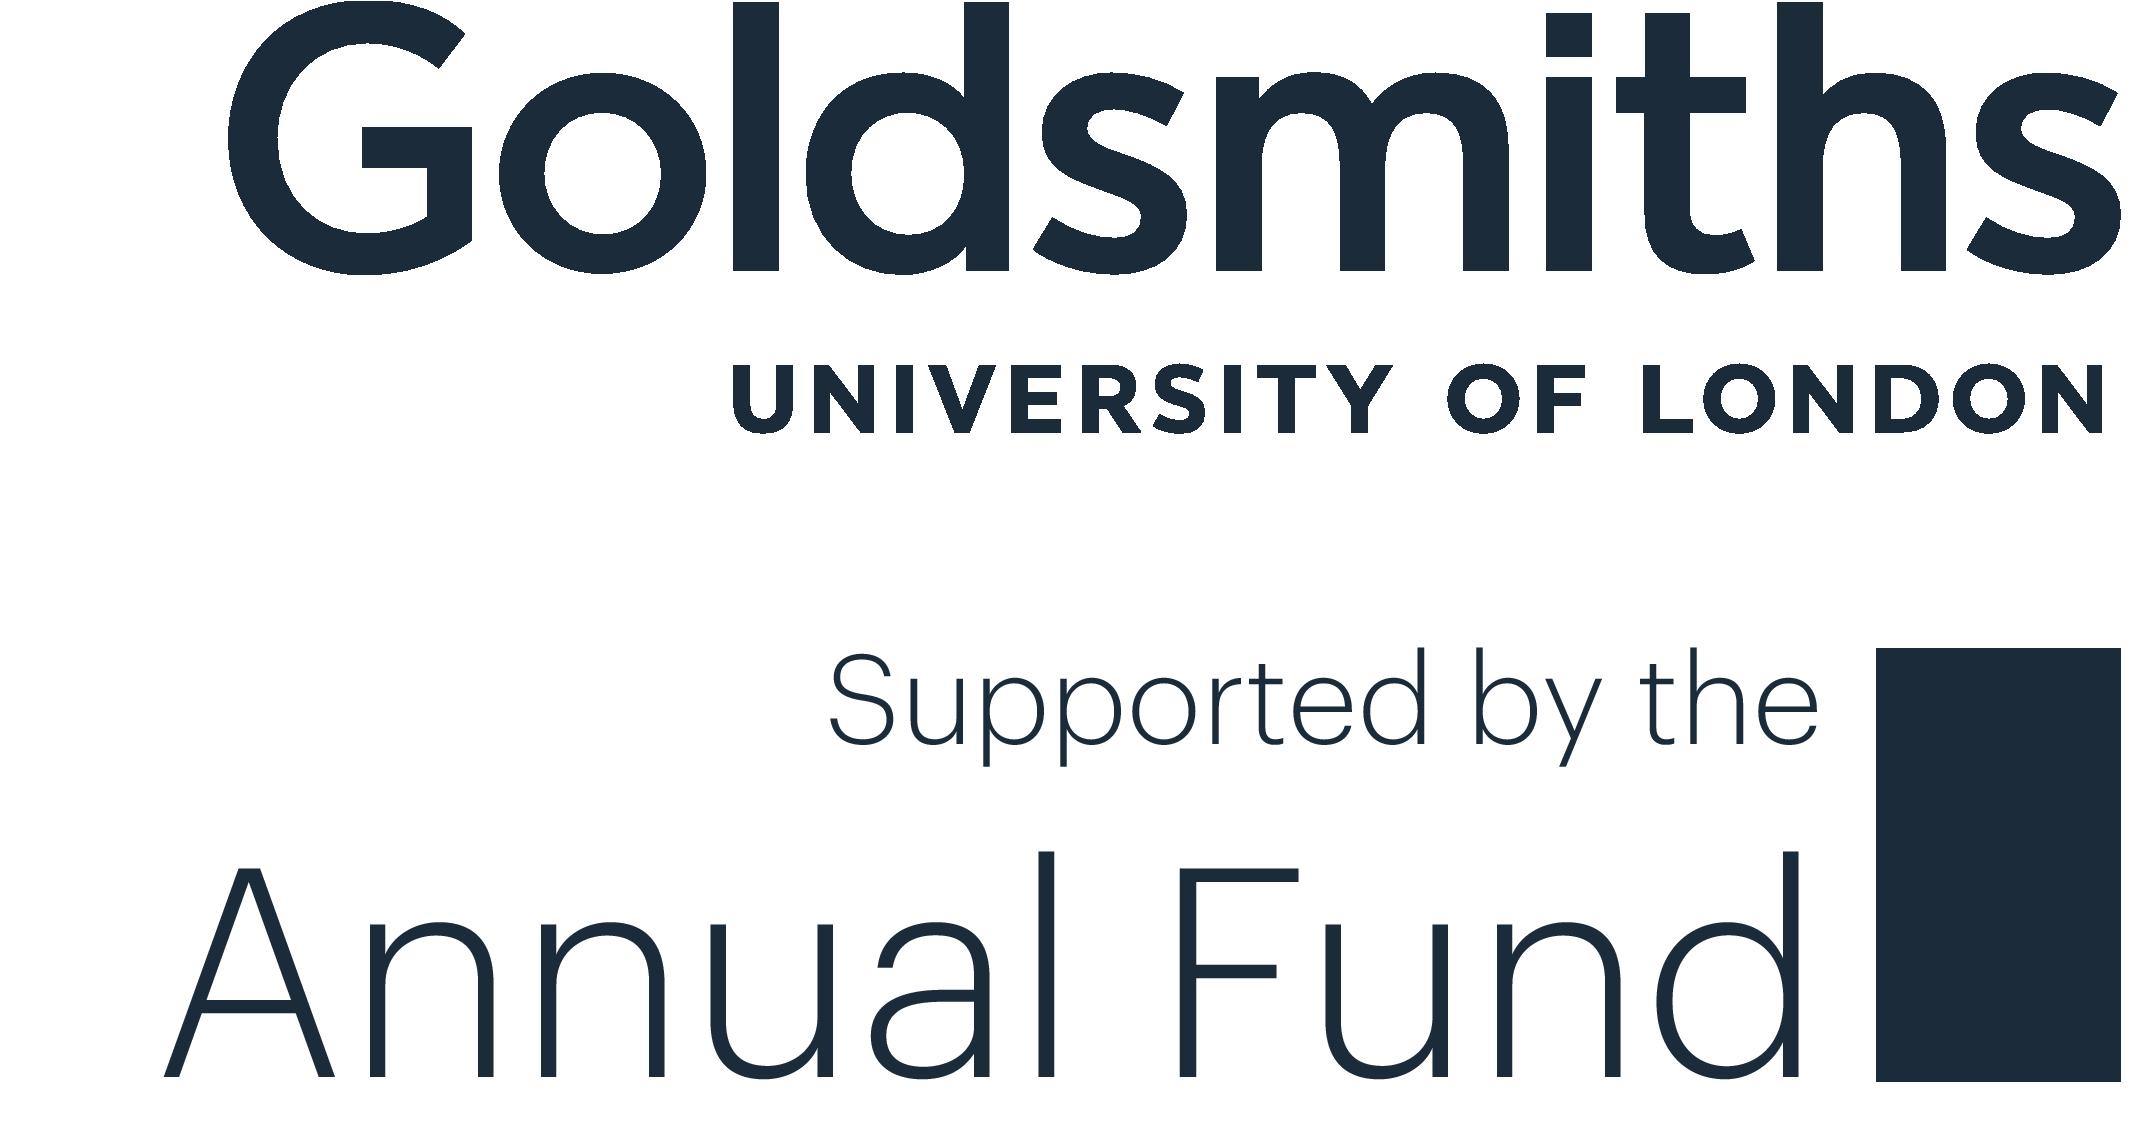 SubBrand_Annual_Fund_Lock-up_Logo_DG-page-001